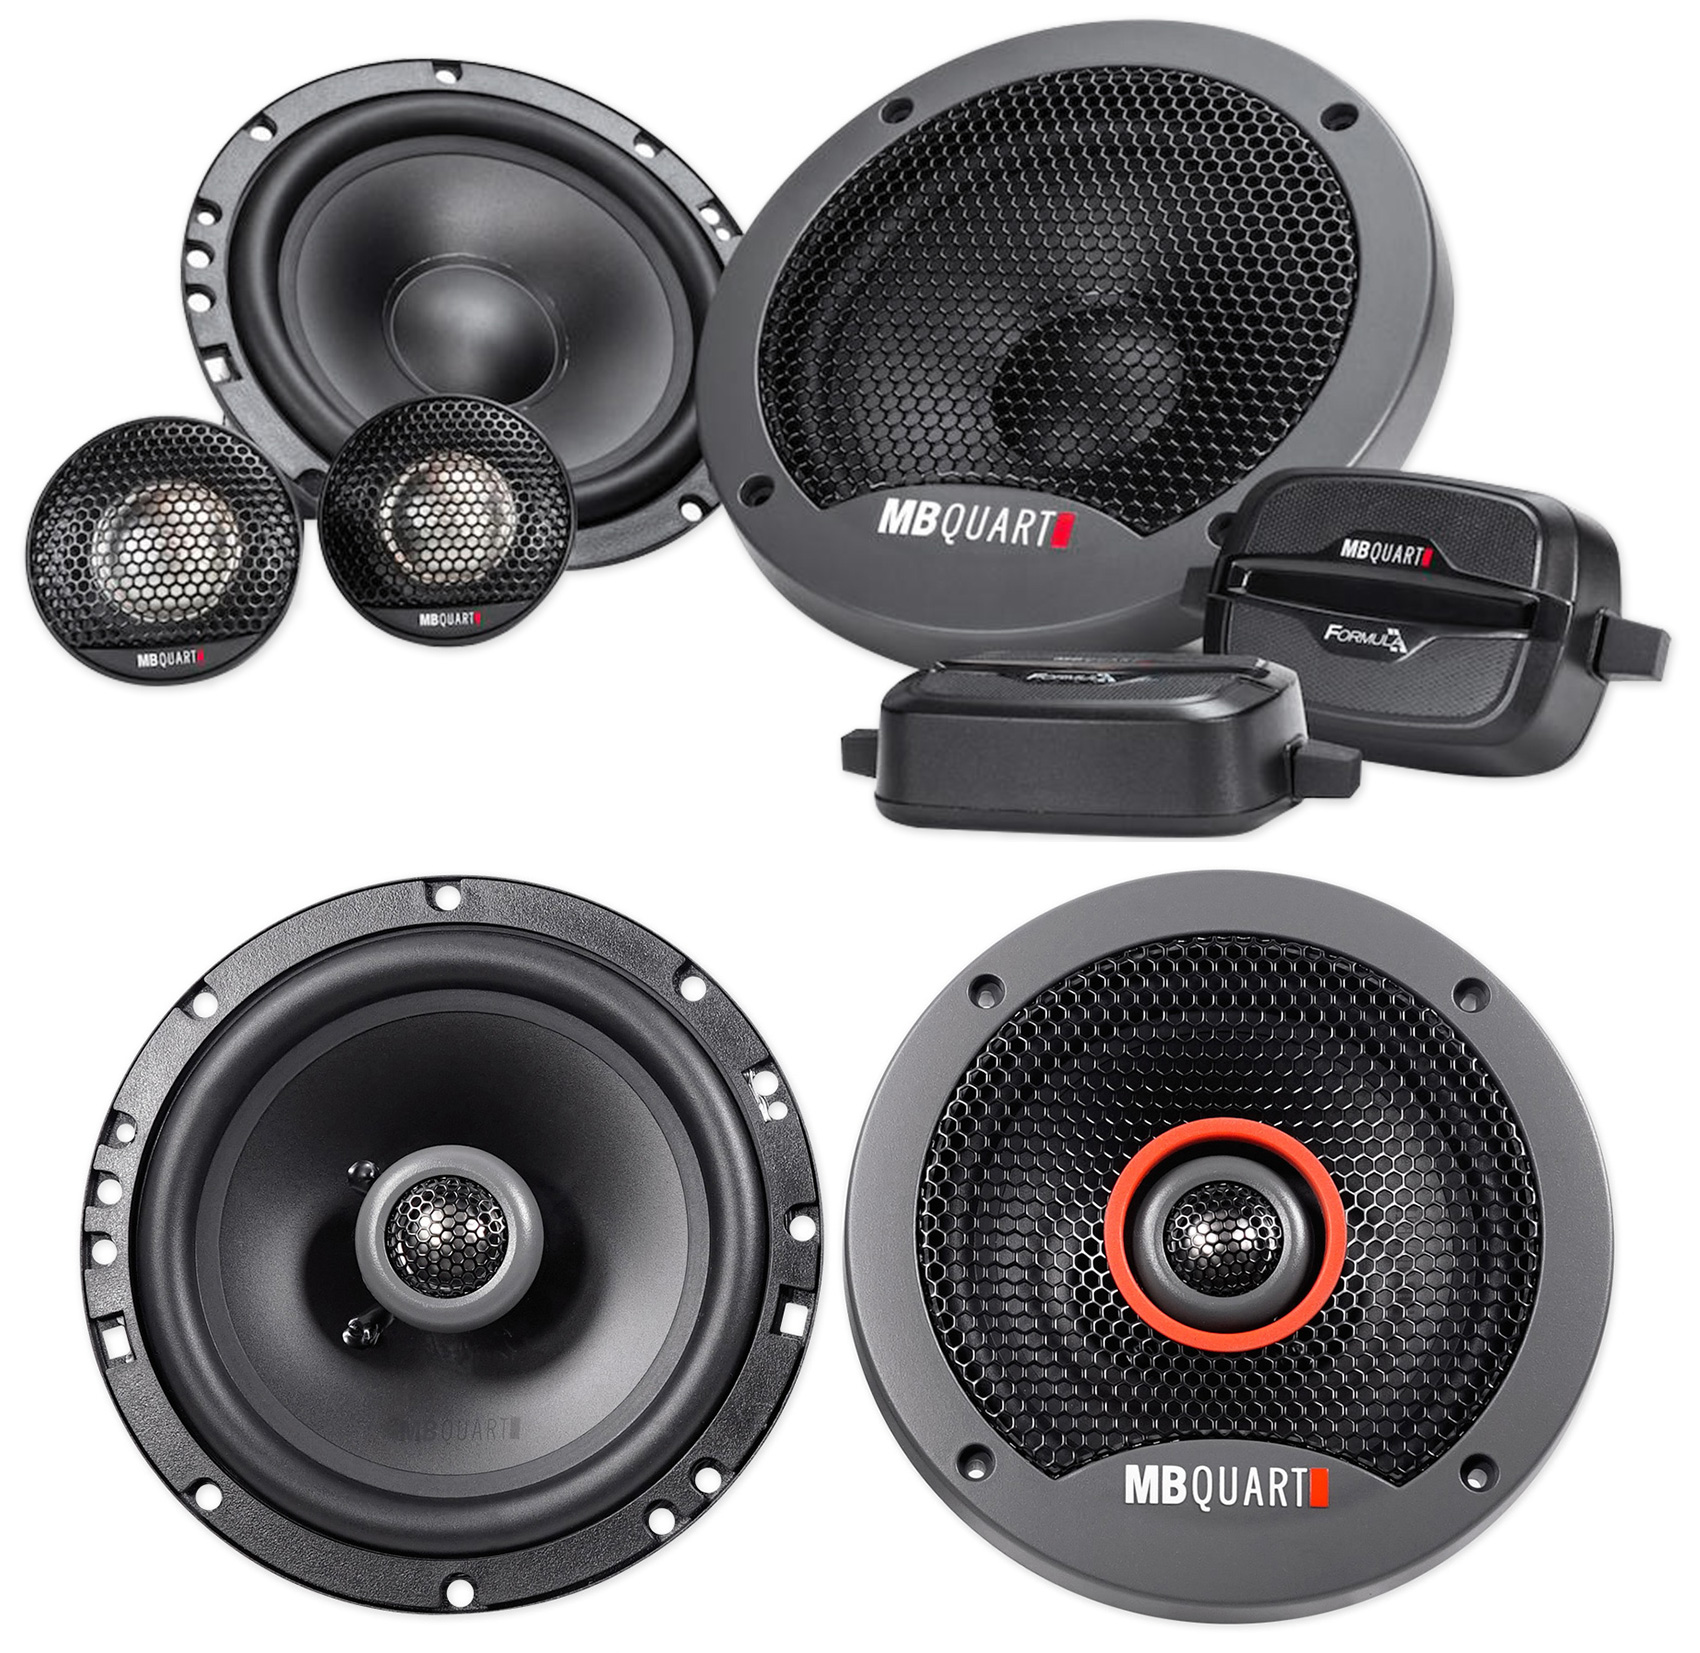 "Pair MB QUART FSB216 6.5"" 280 Watt Component Speakers+(2) 6.5"" Coaxial Speakers"